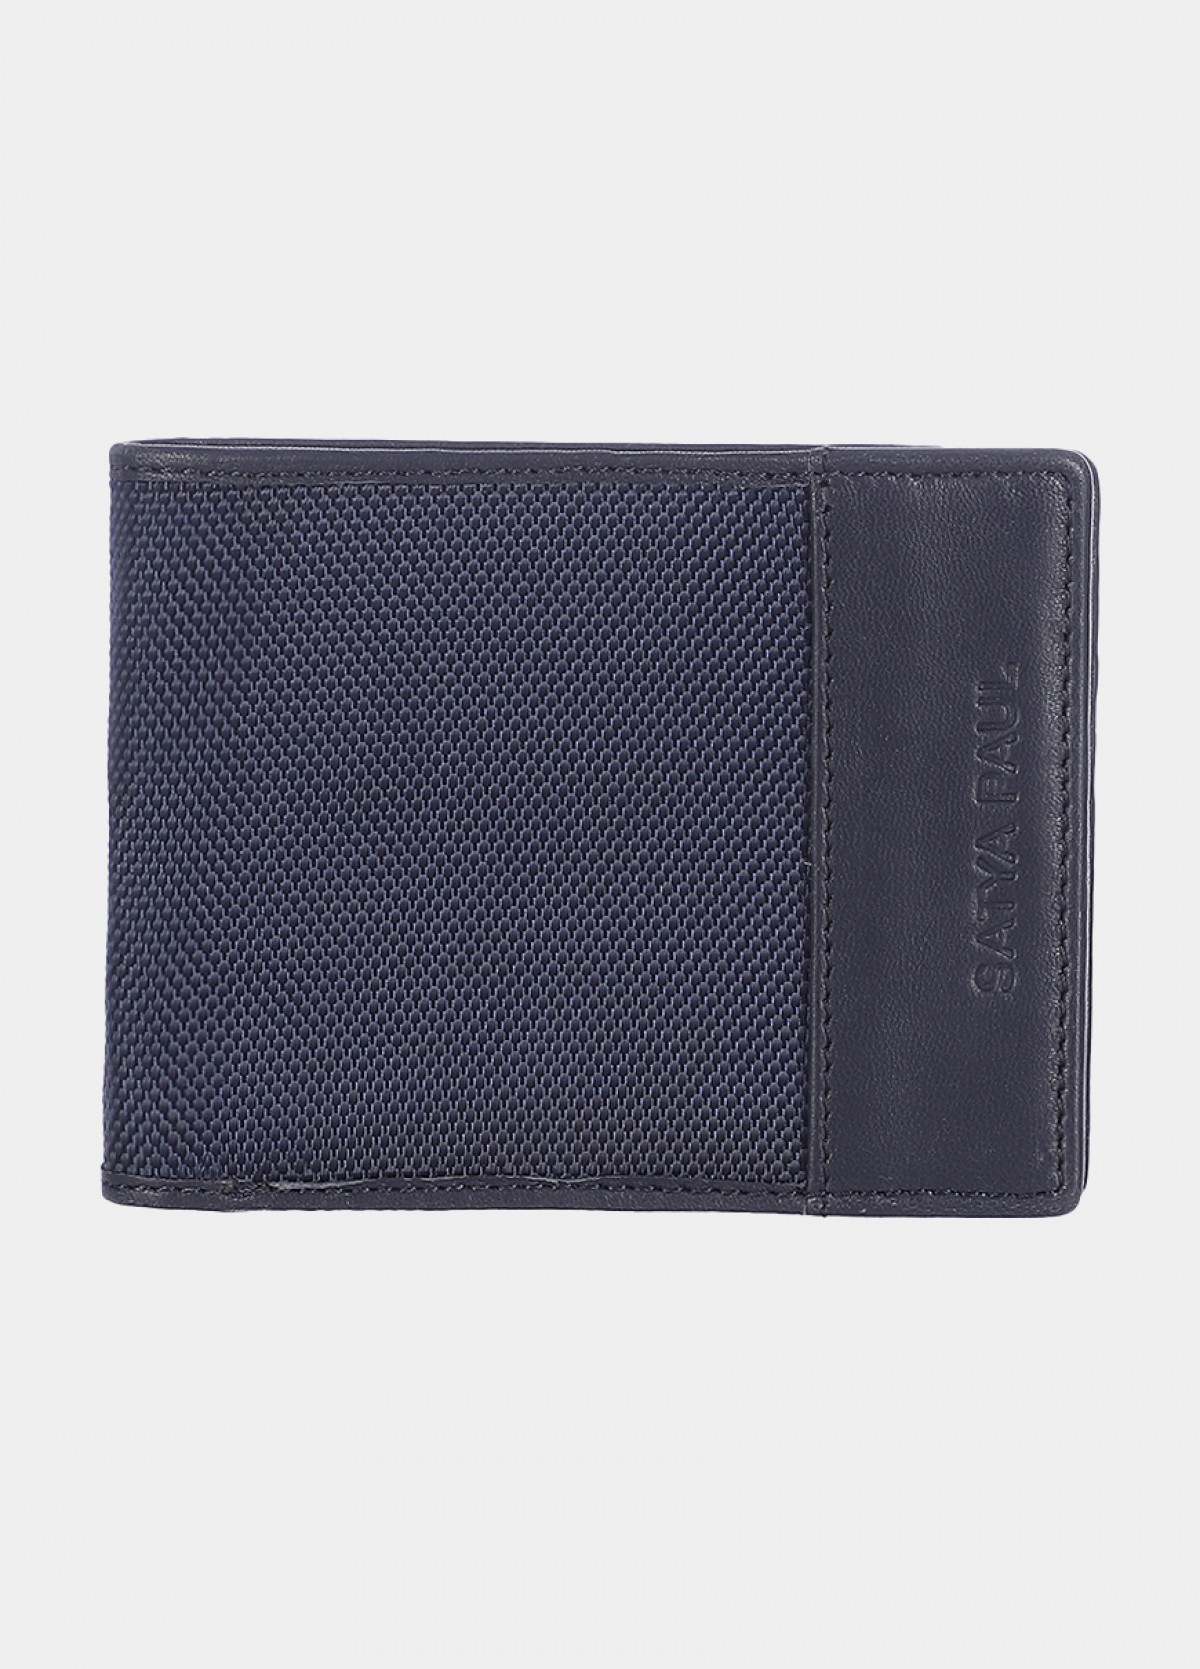 Him & The City Men's Bi Fold Wallet With Coin Pocket Navy